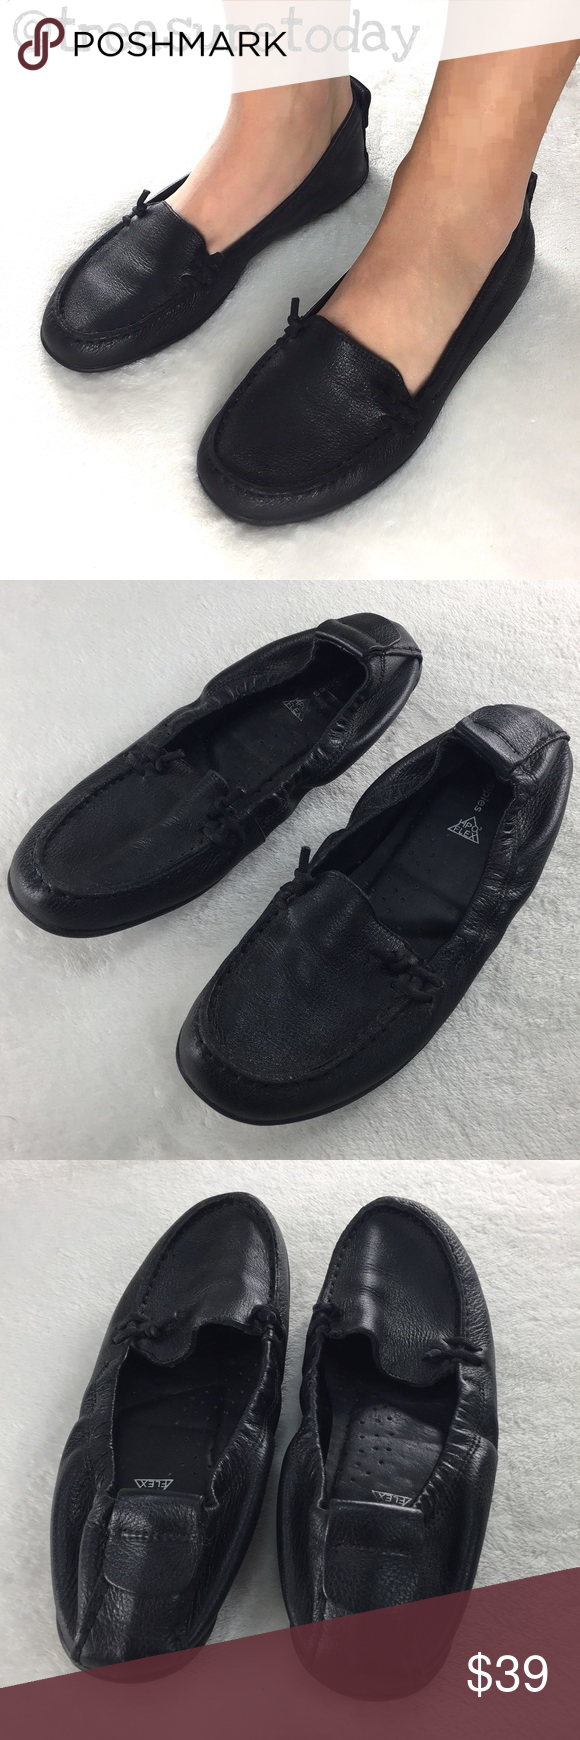 Hush Puppies Black Leather Flats Moccasins Black Leather Flats Leather Flats Hush Puppies Shoes